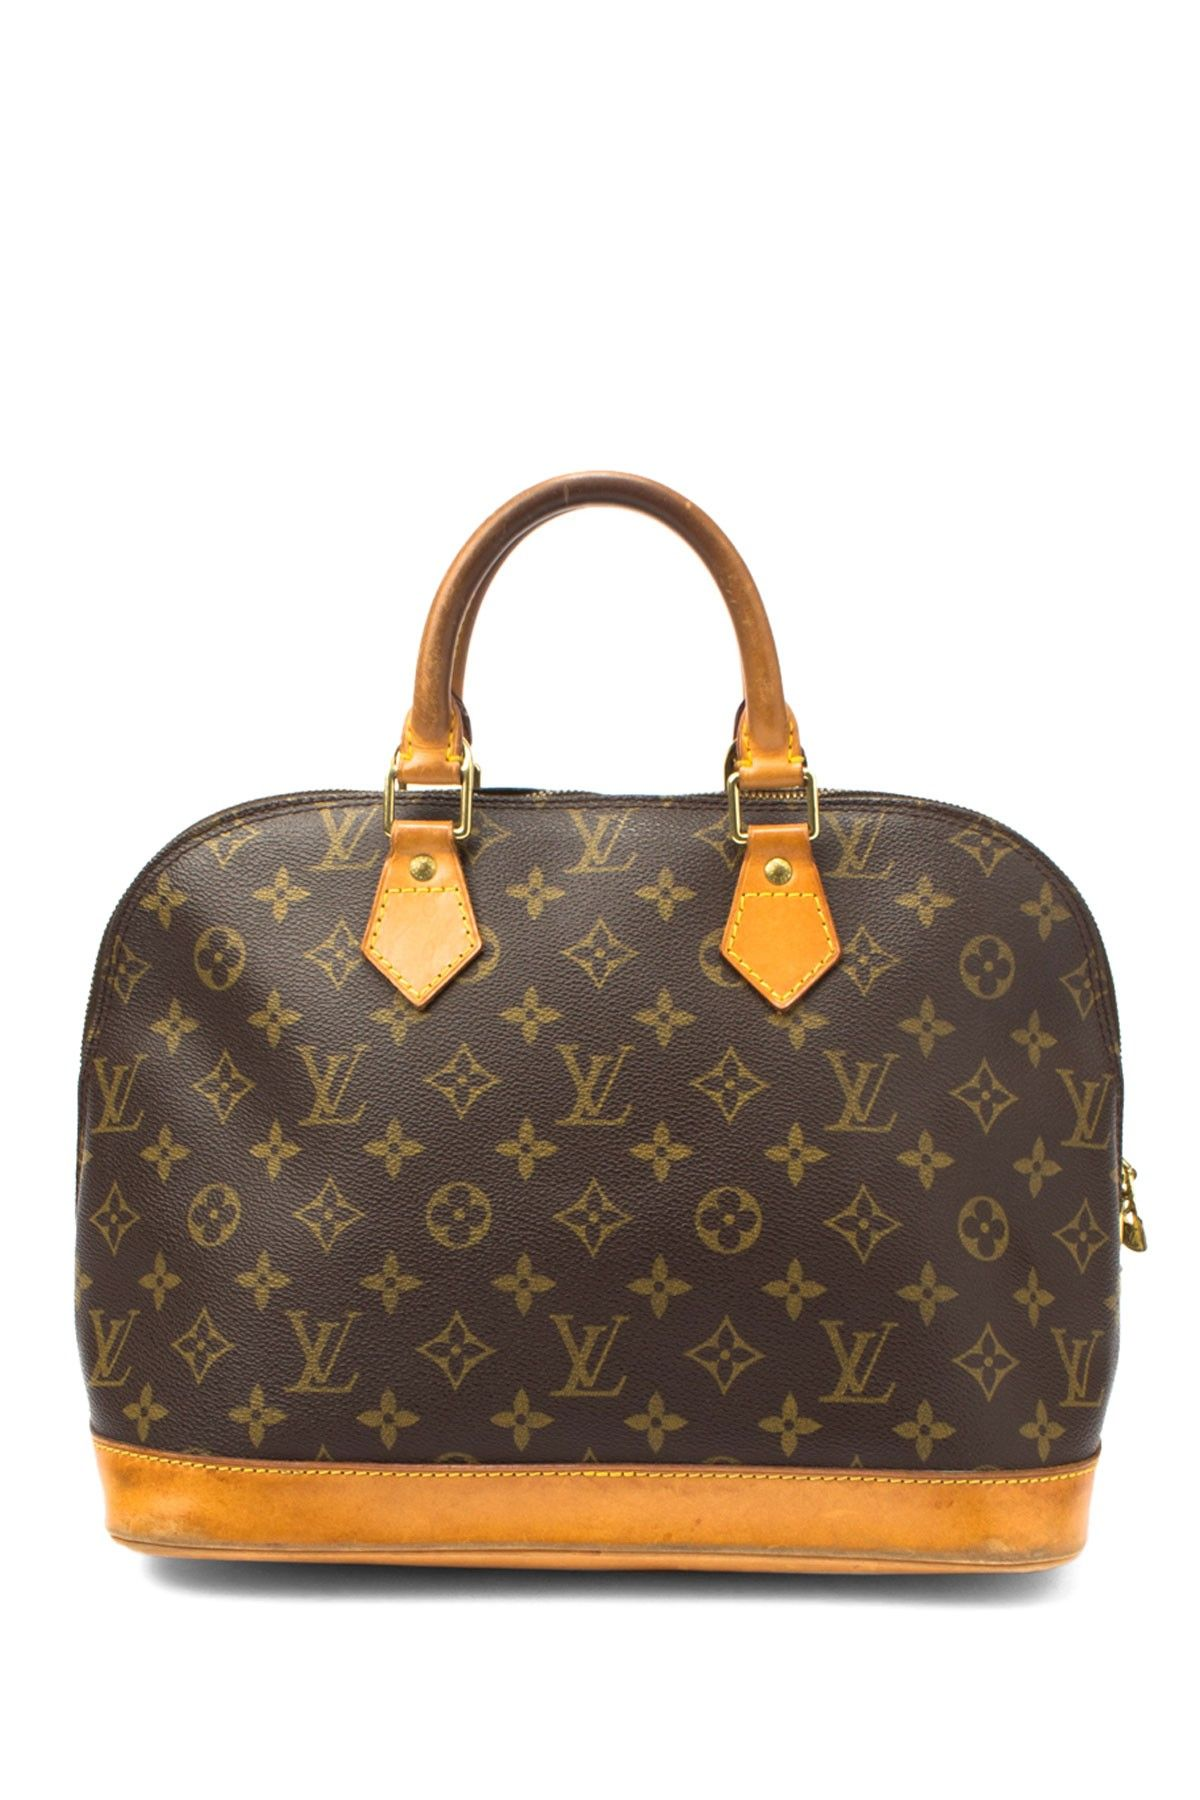 7b09620faa7 Vintage Louis Vuitton Leather Alma Handbag